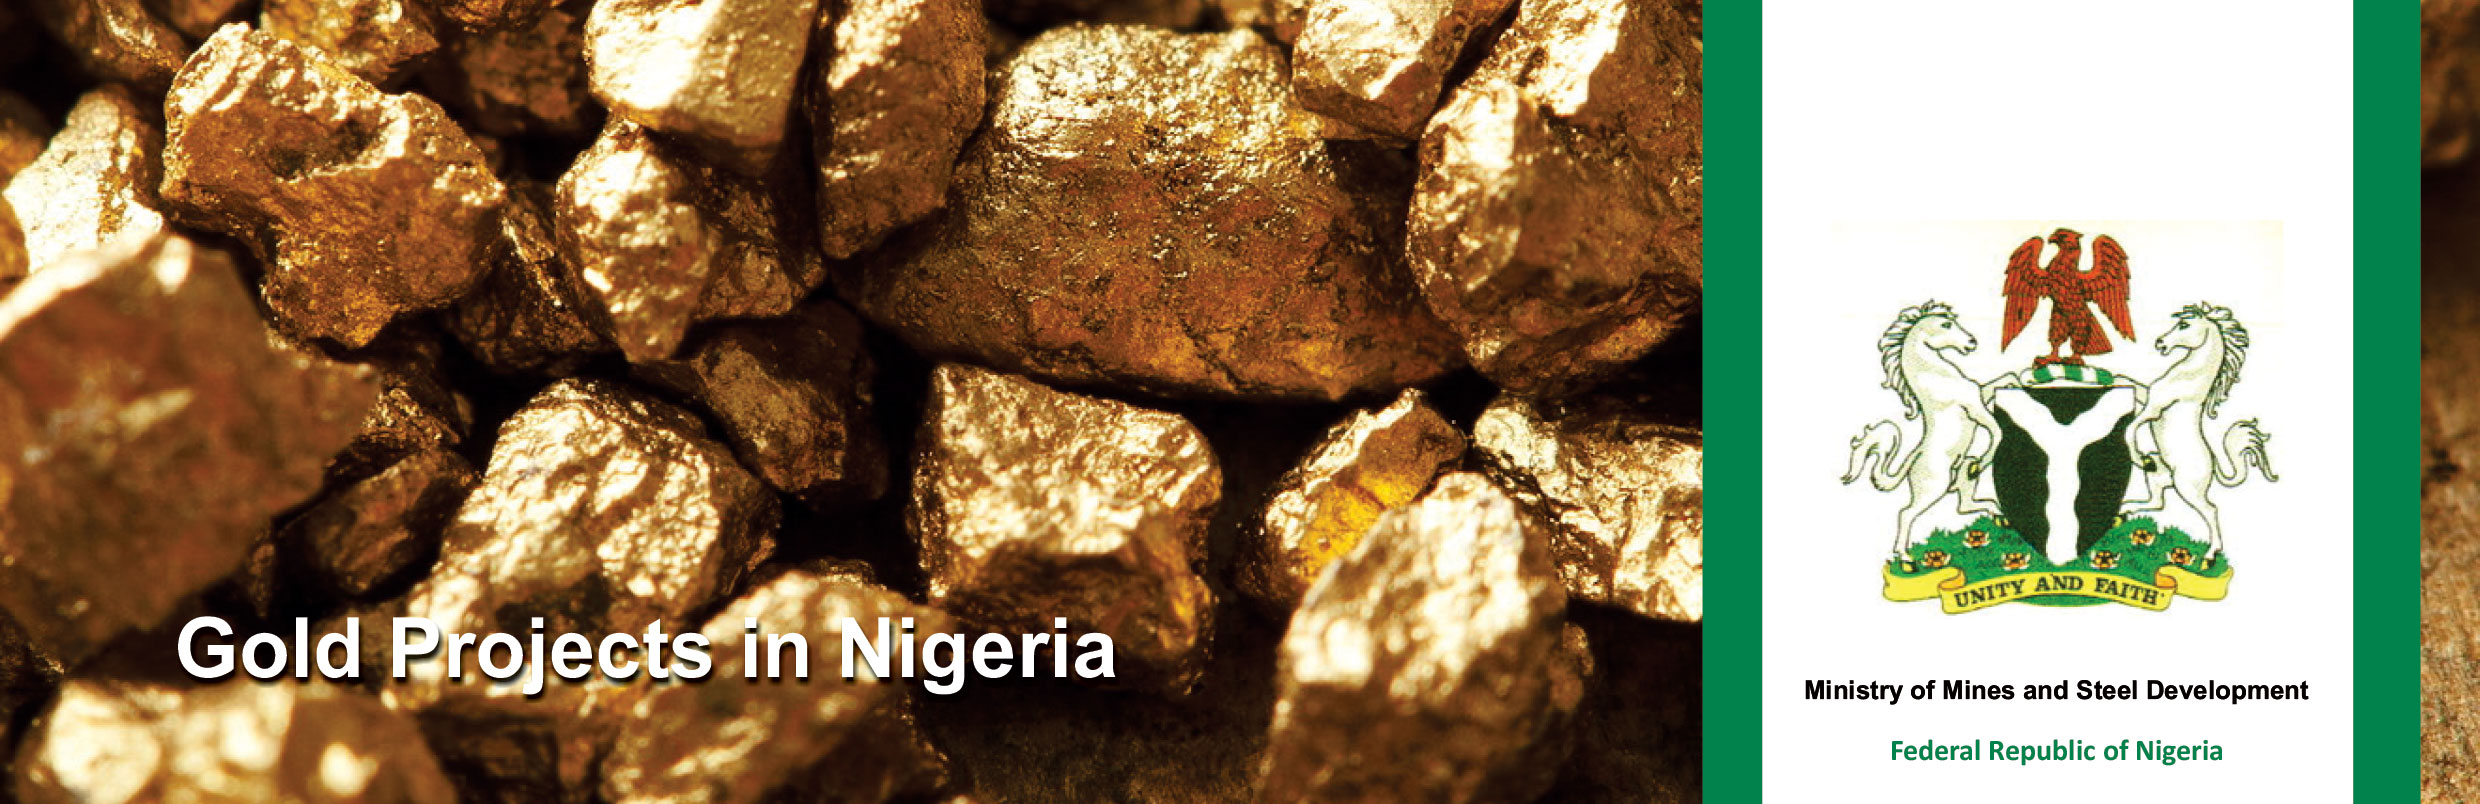 Nigeria - Gold Project - header